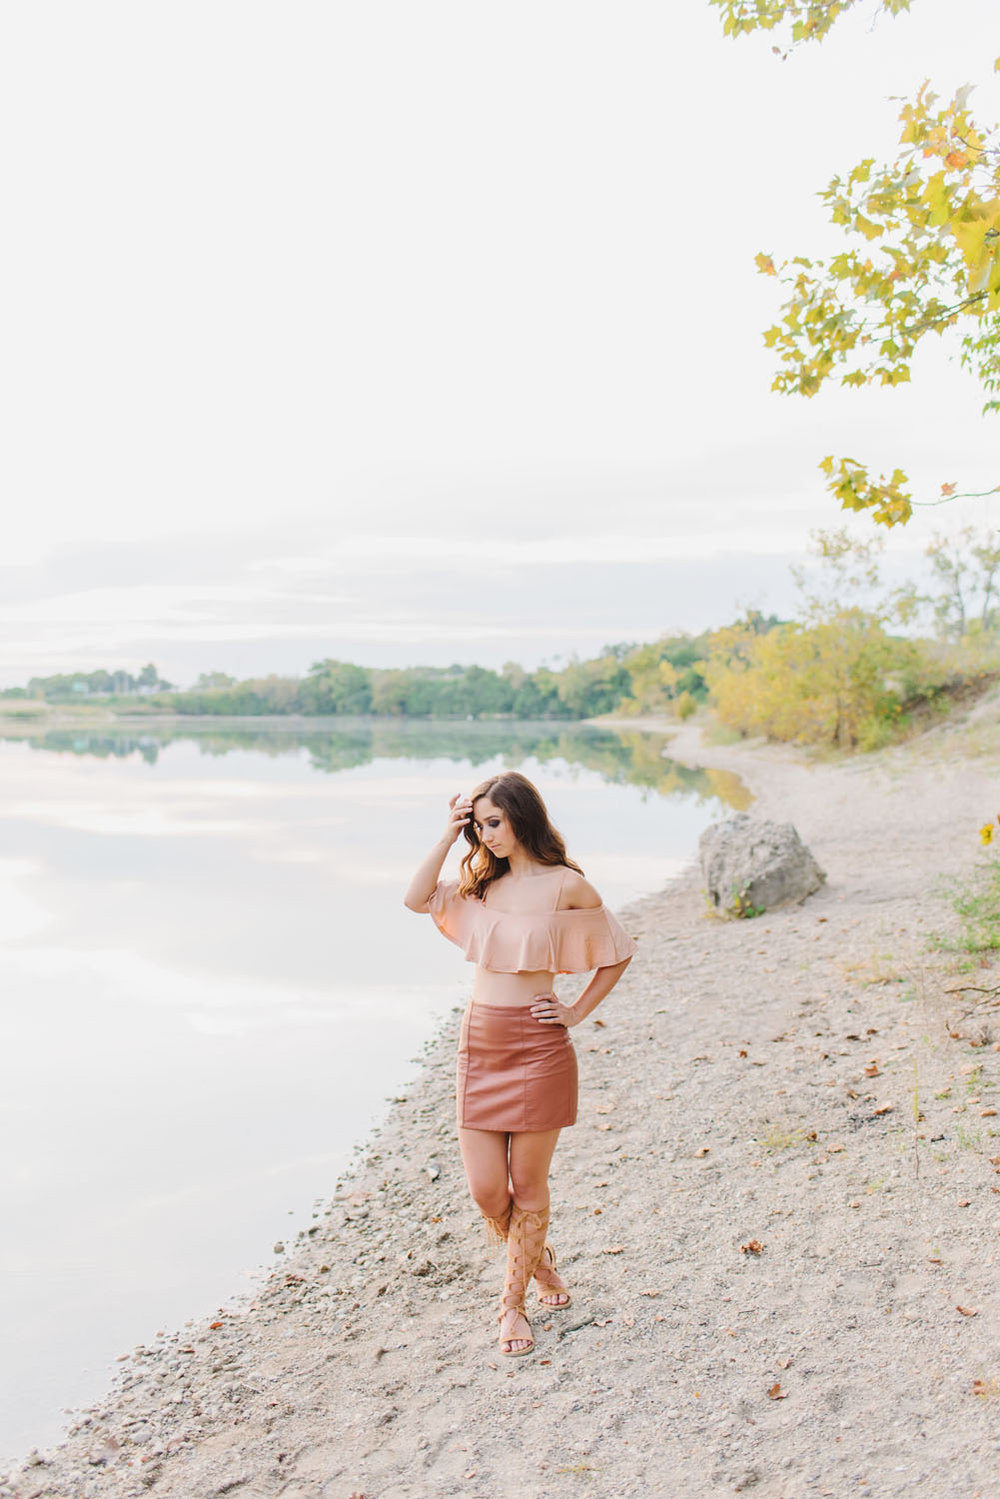 Bright and airy film and digital senior portraits for girls